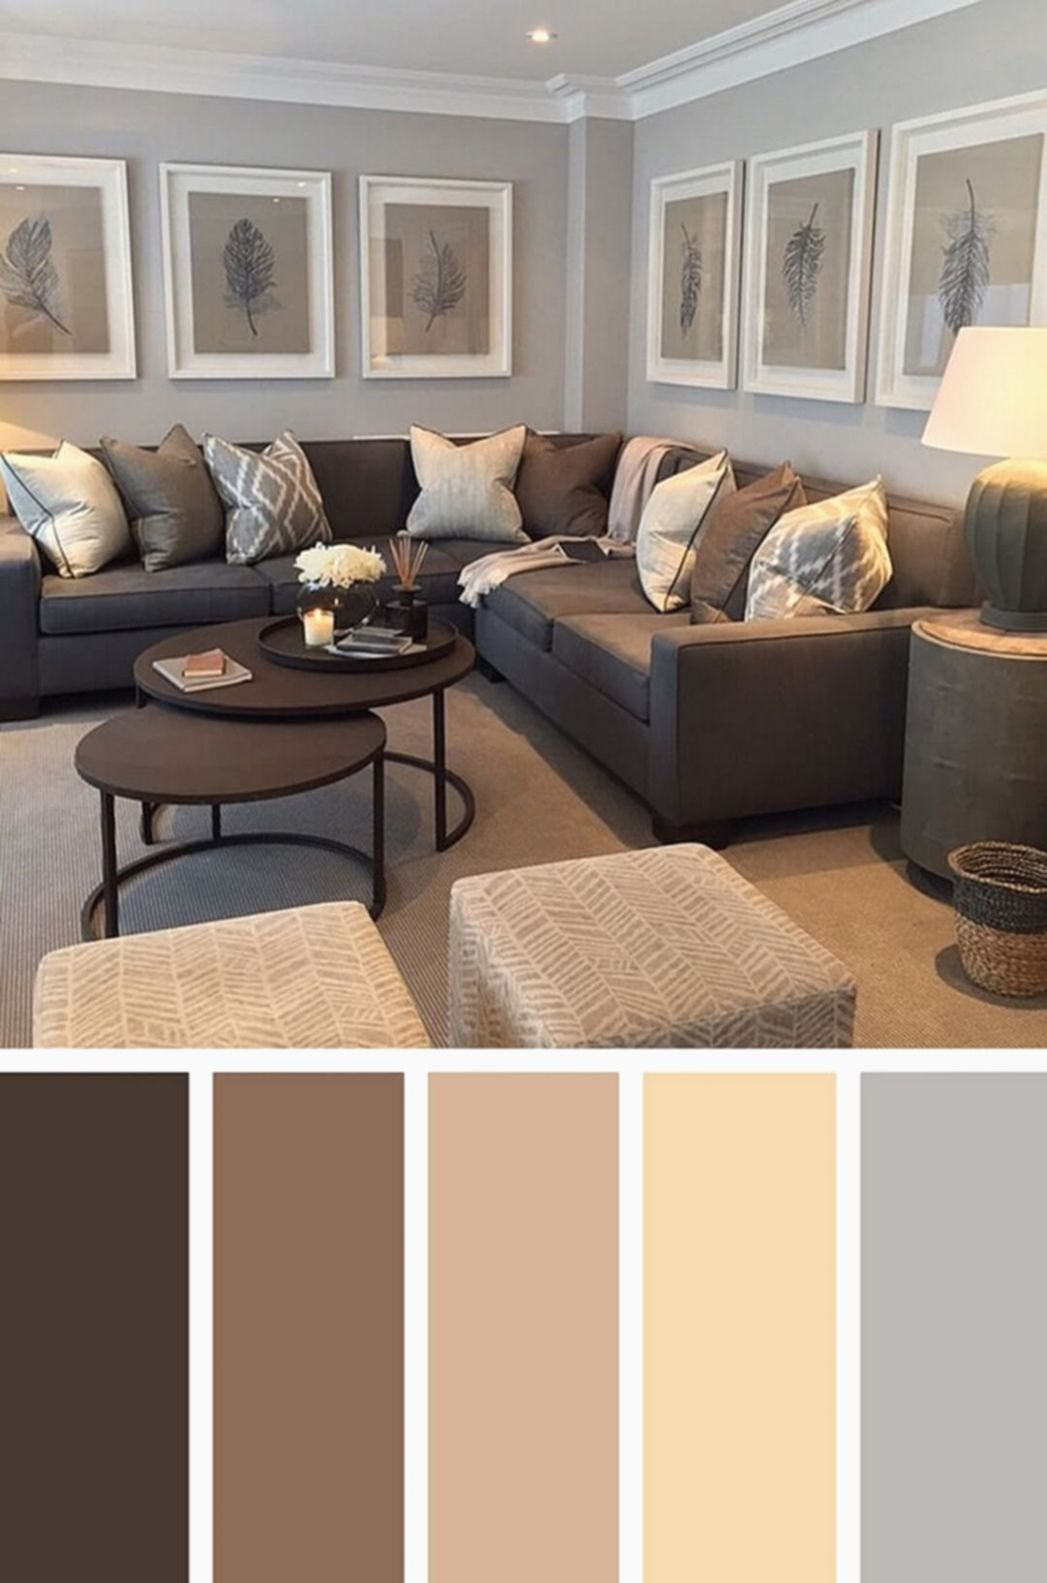 21 inviting living room color design ideas | grey and brown